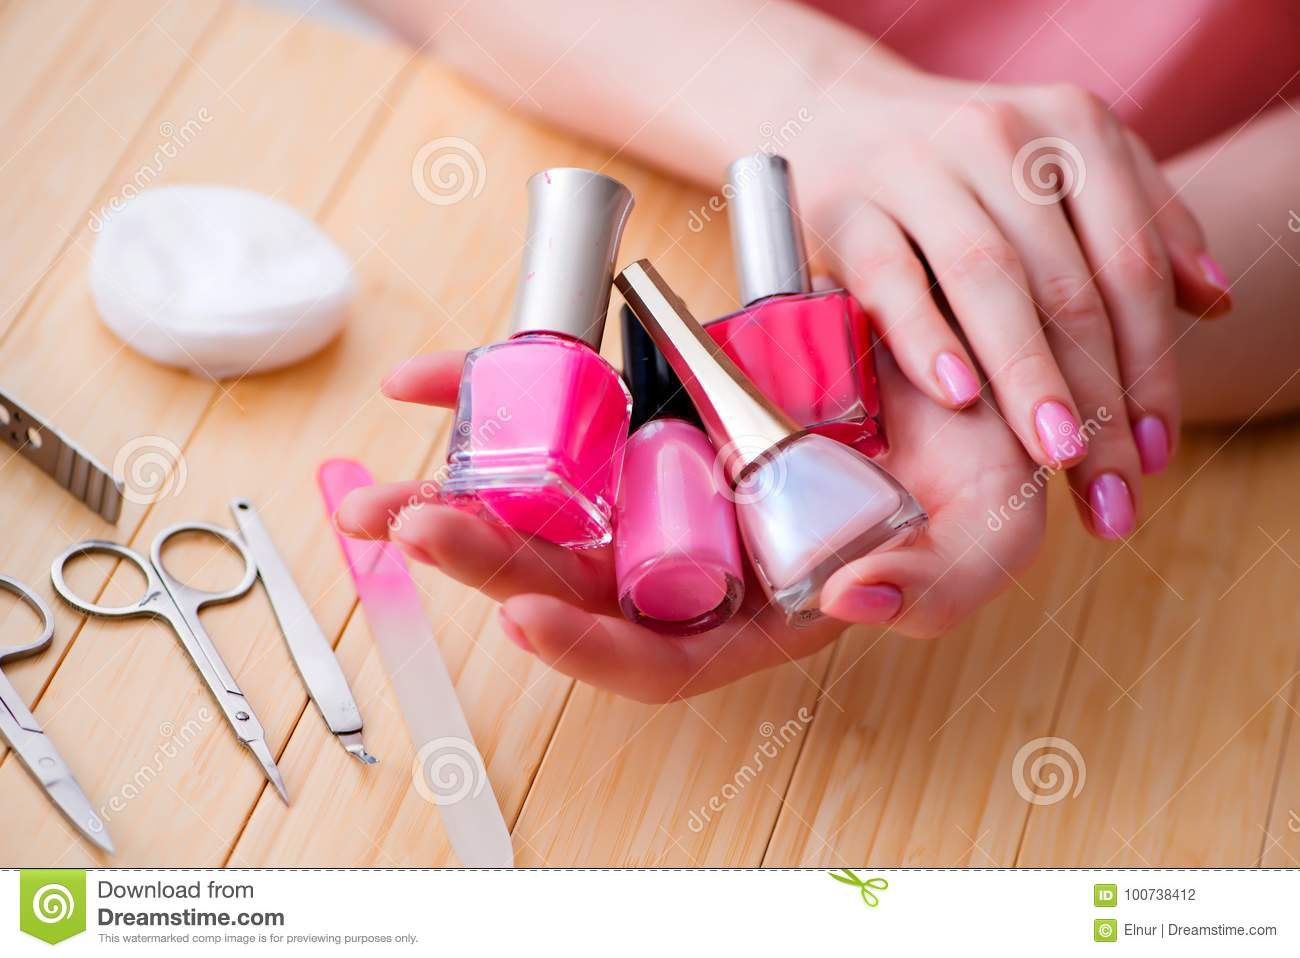 The Beauty Products Nail Care Tools Pedicure Closeup Stock Photo ...